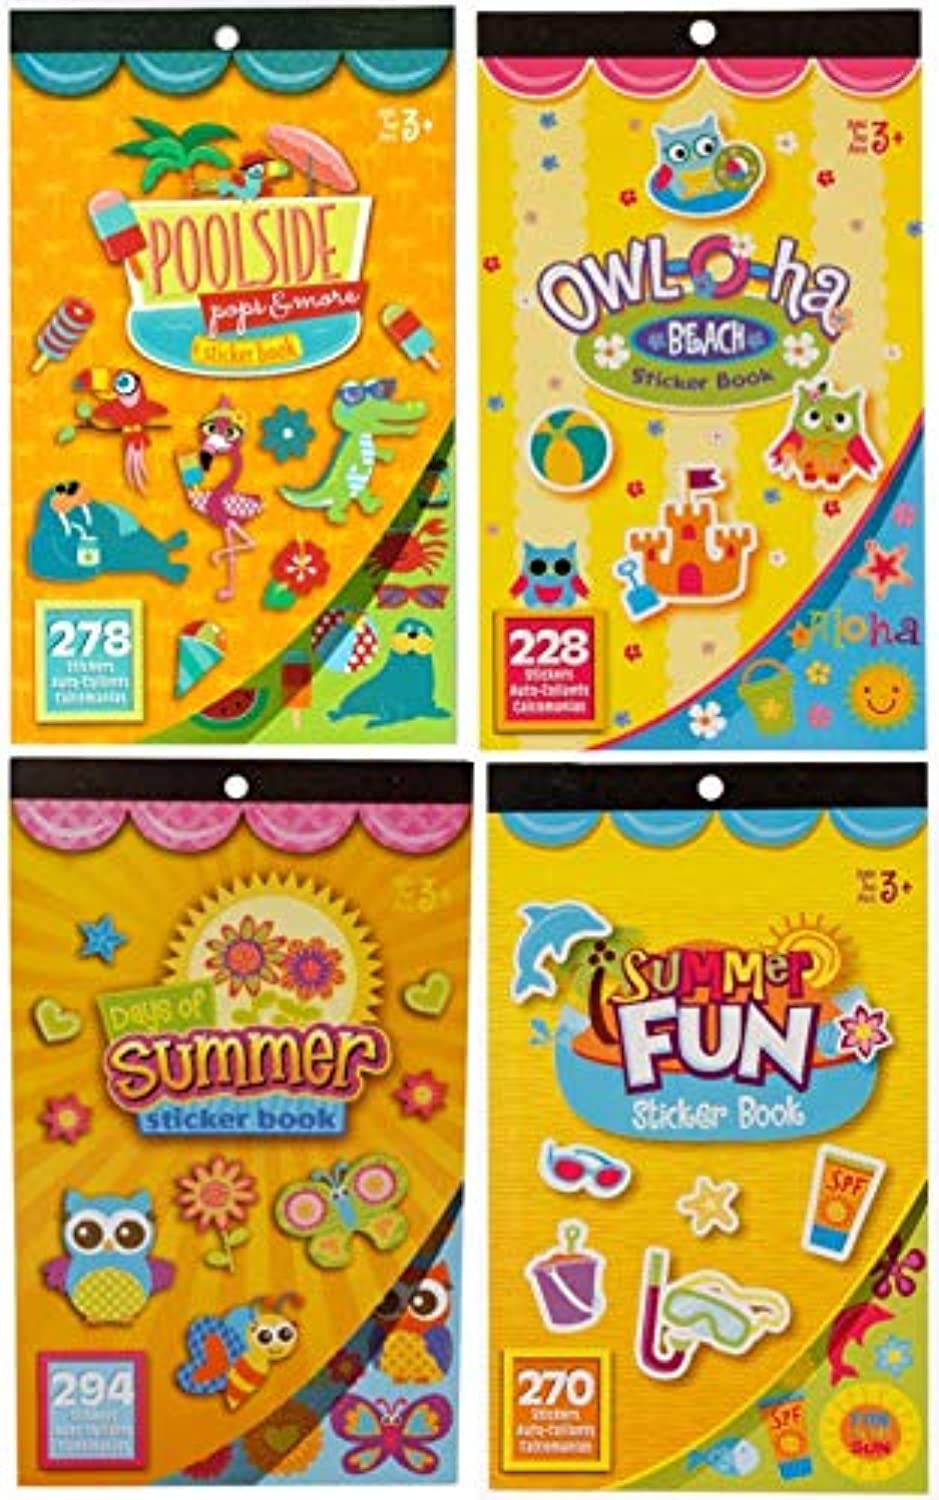 Summer Fun, Beach, and Poolside Sticker Books- Over 1,000 Stickers